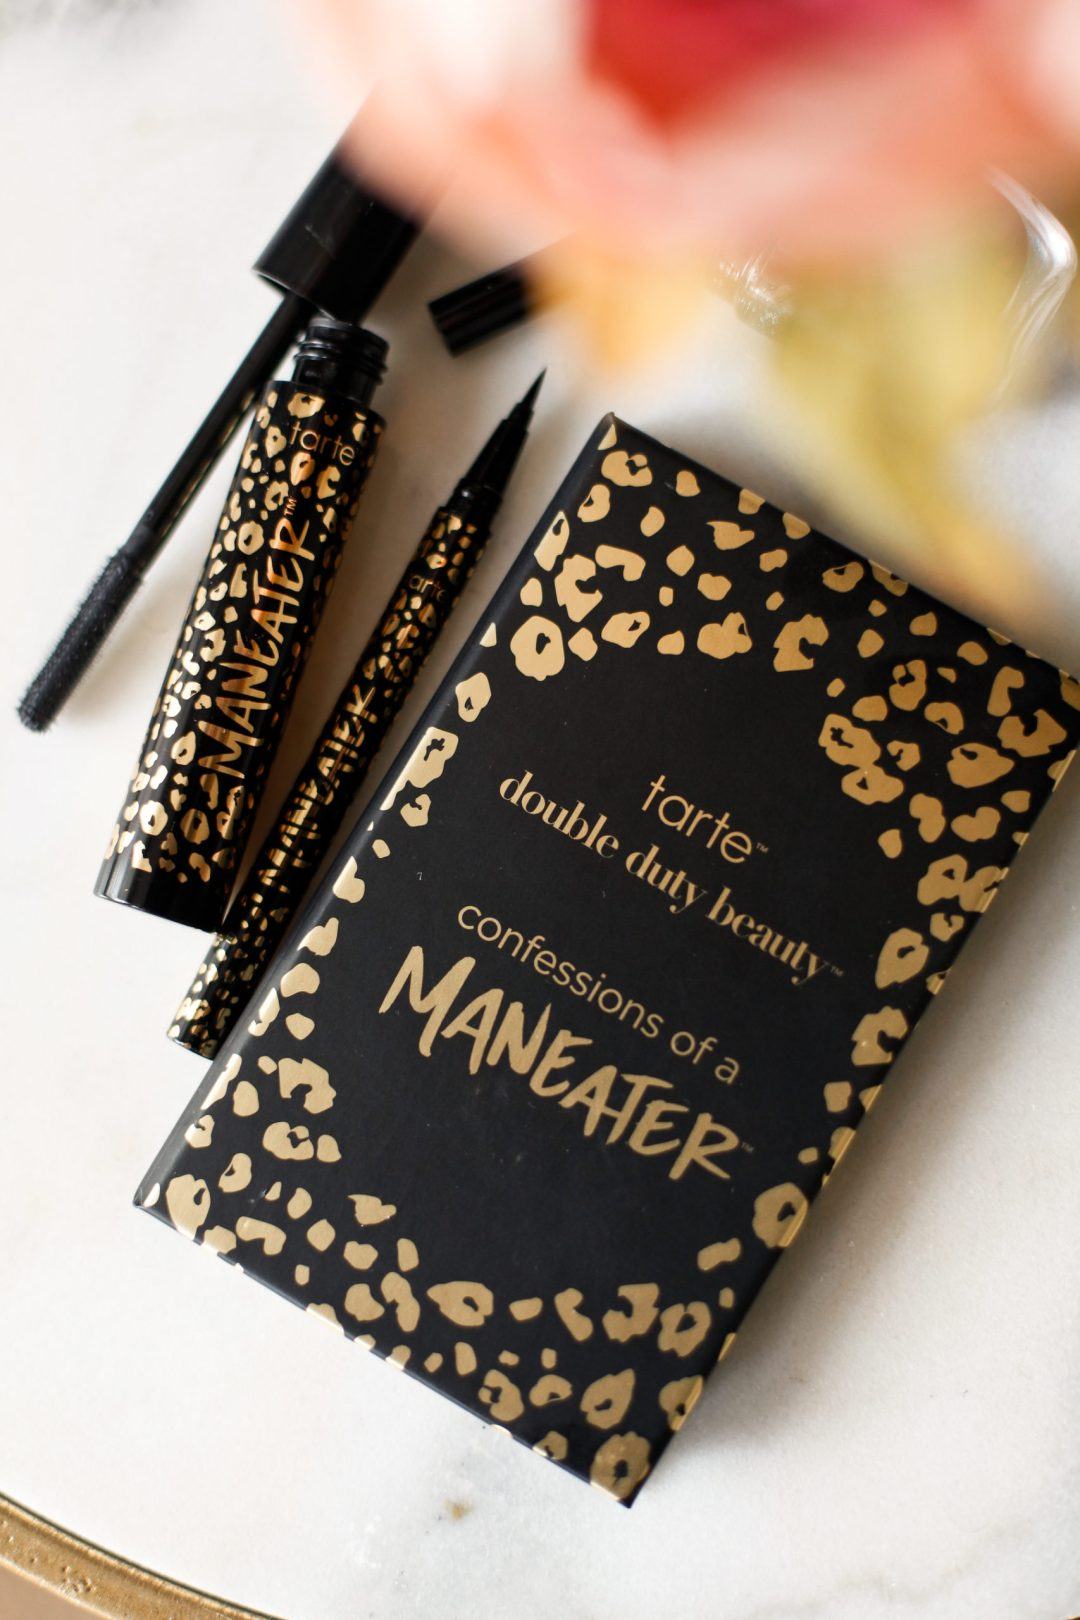 Tarte's Confessions of a Maneater Eye & Cheek Palette